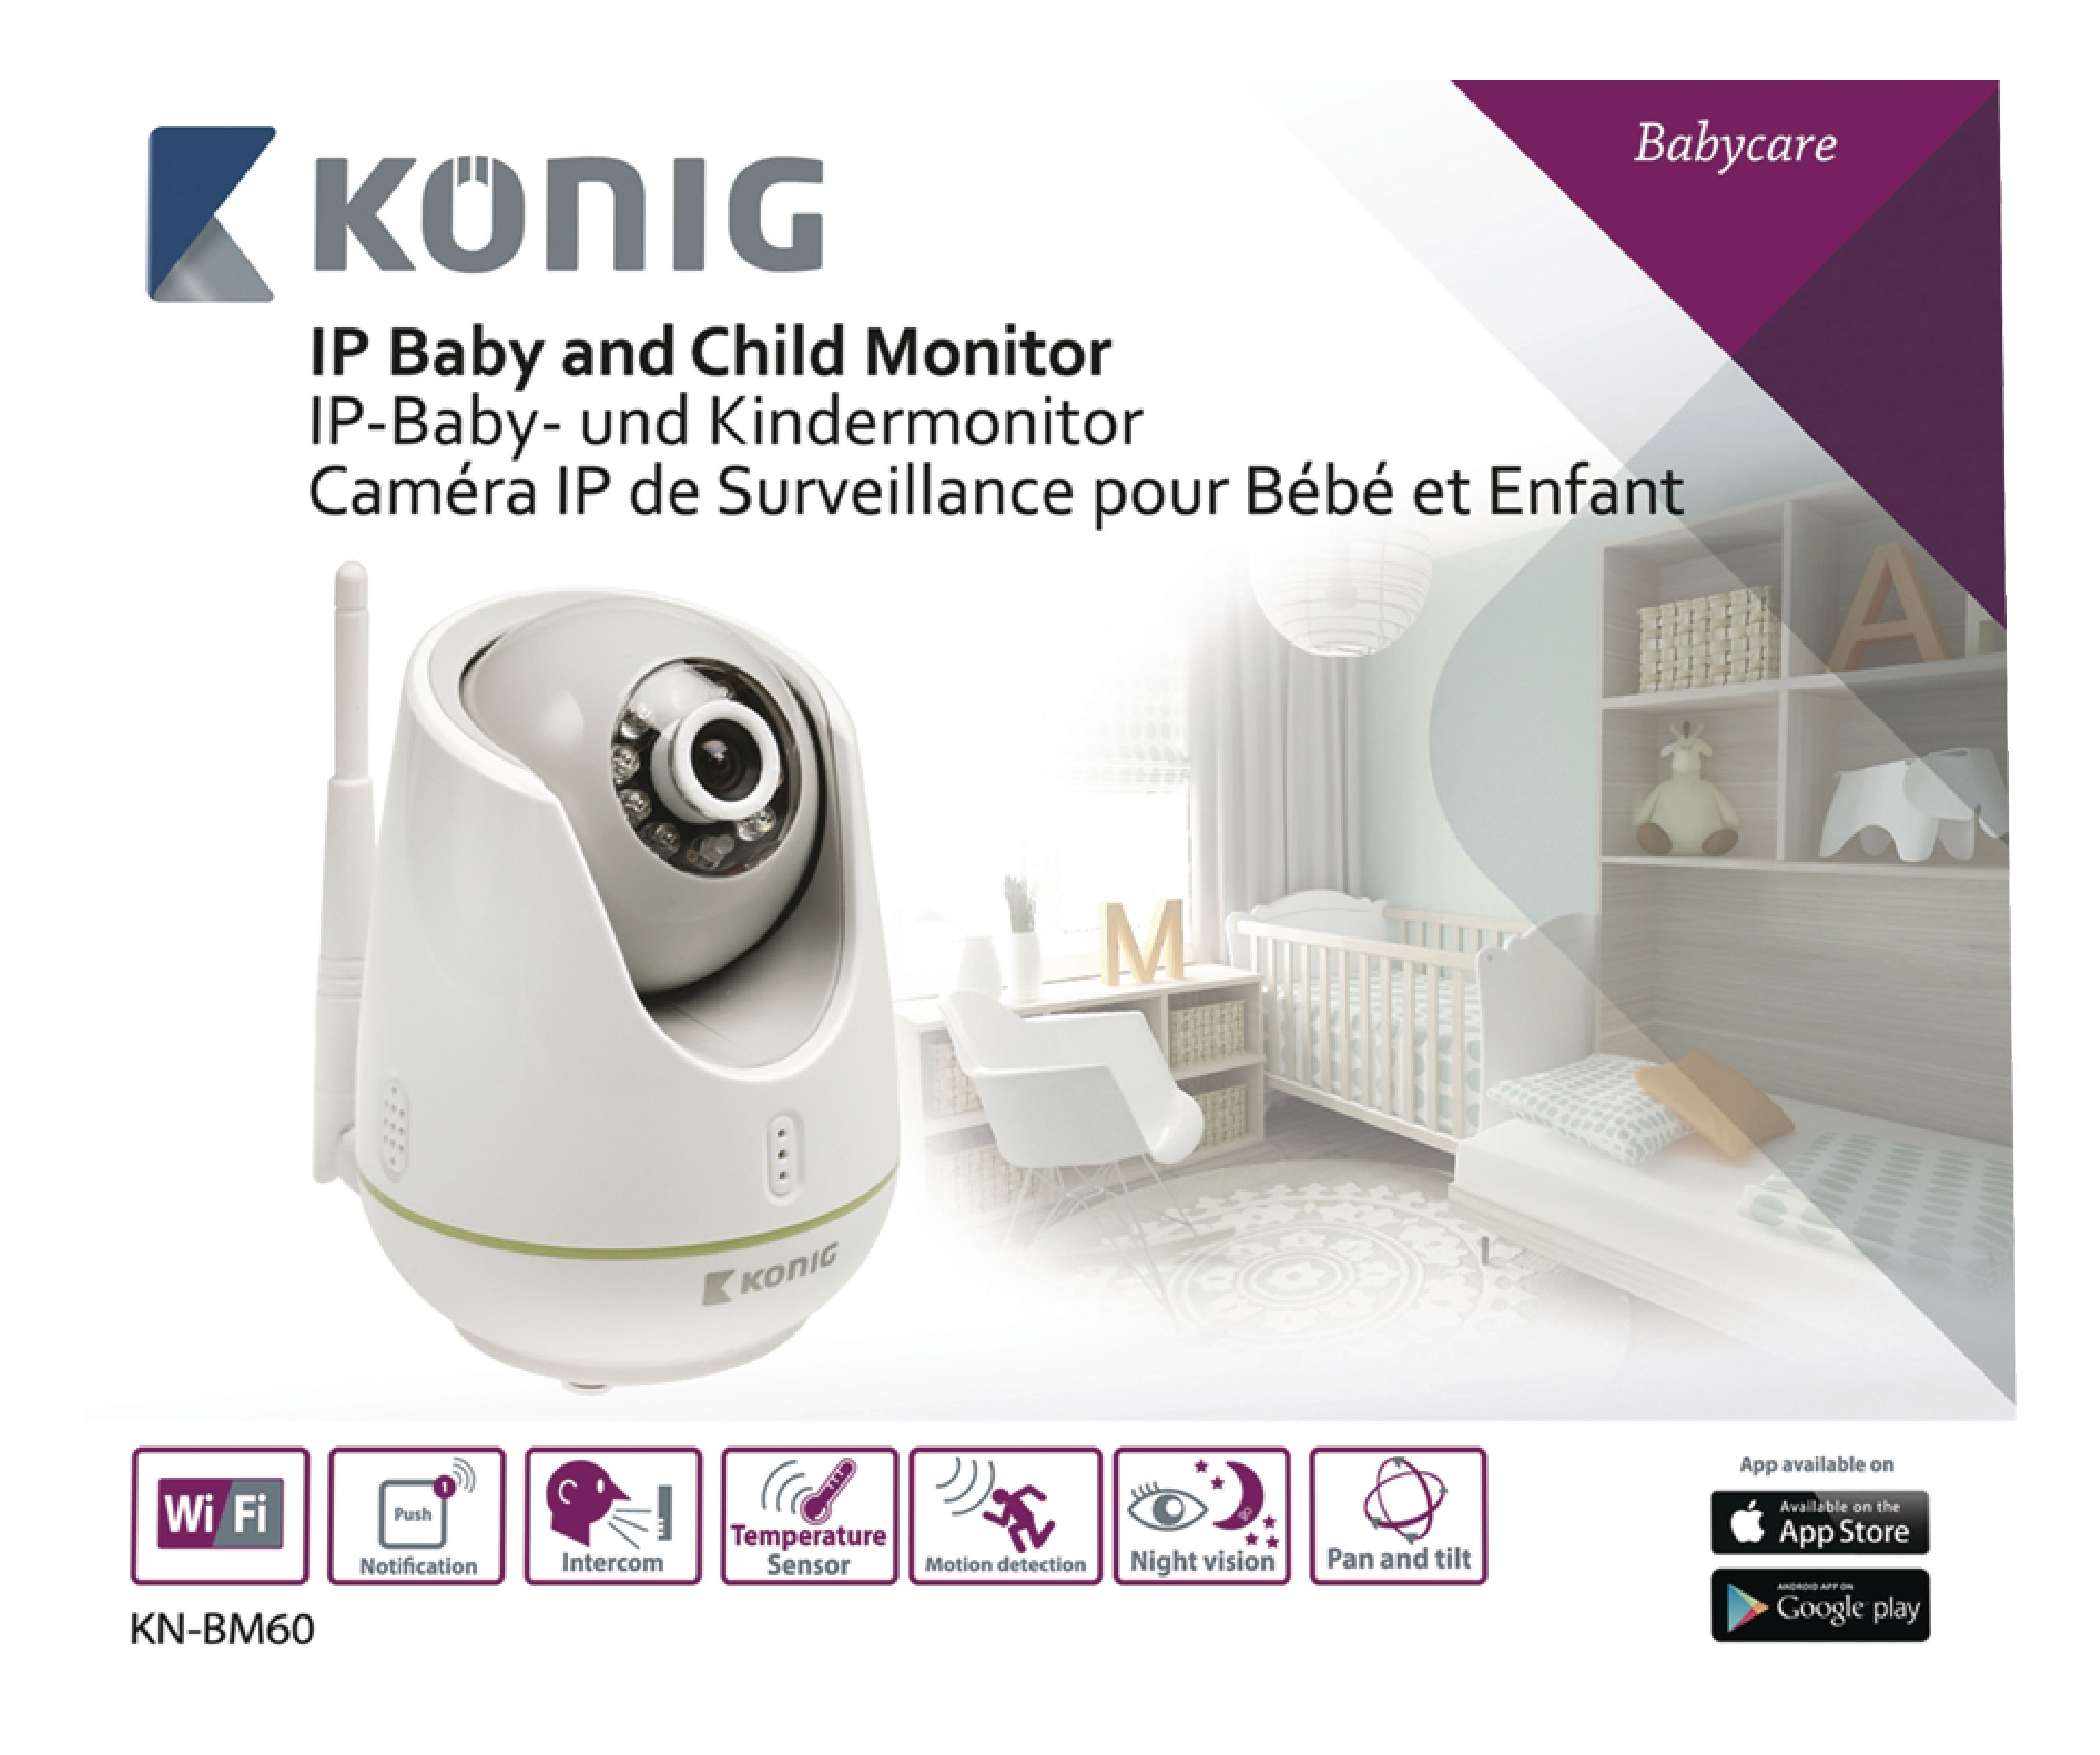 Next step baby monitors coupon